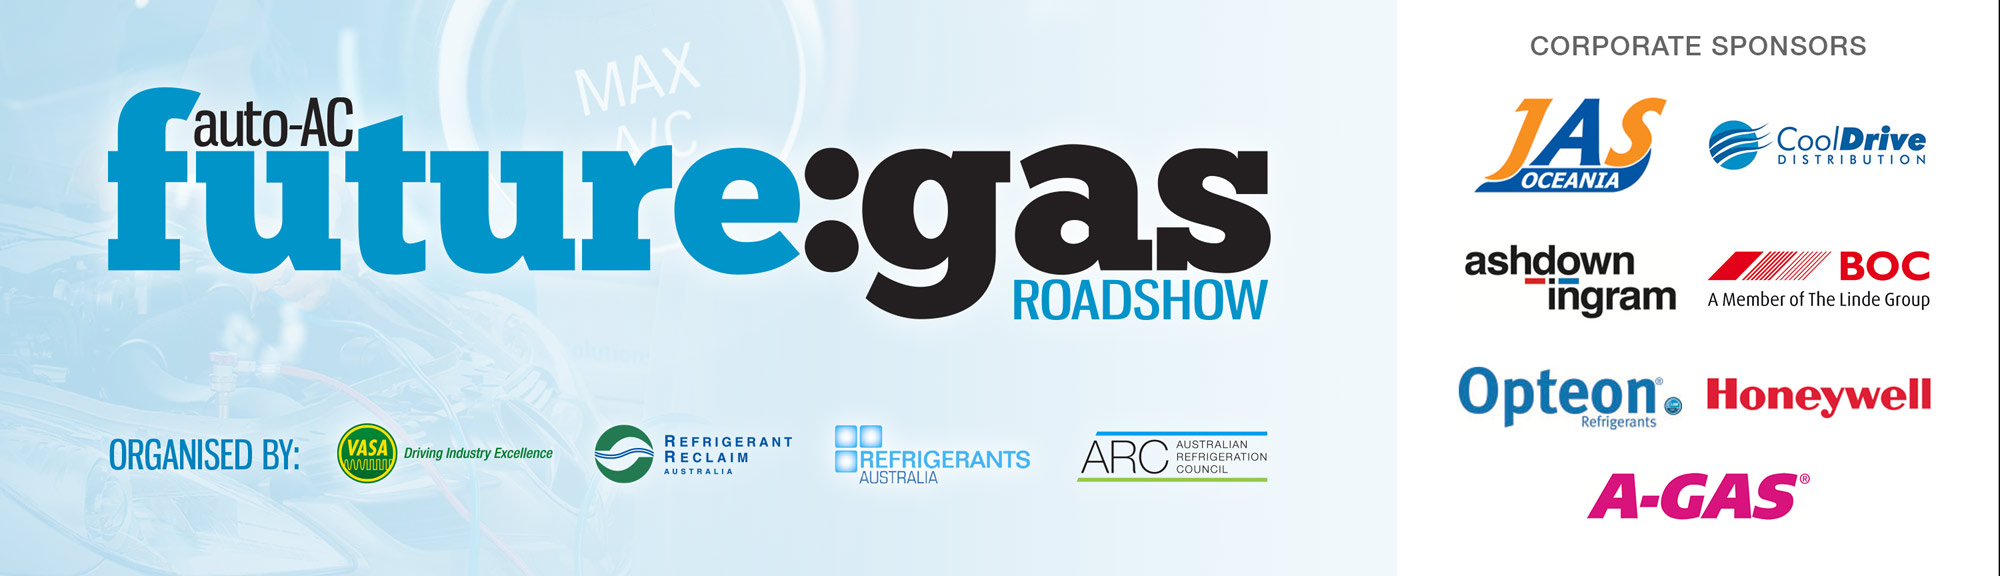 future:gas automotive air-conditioning refrigerant seminar roadshow